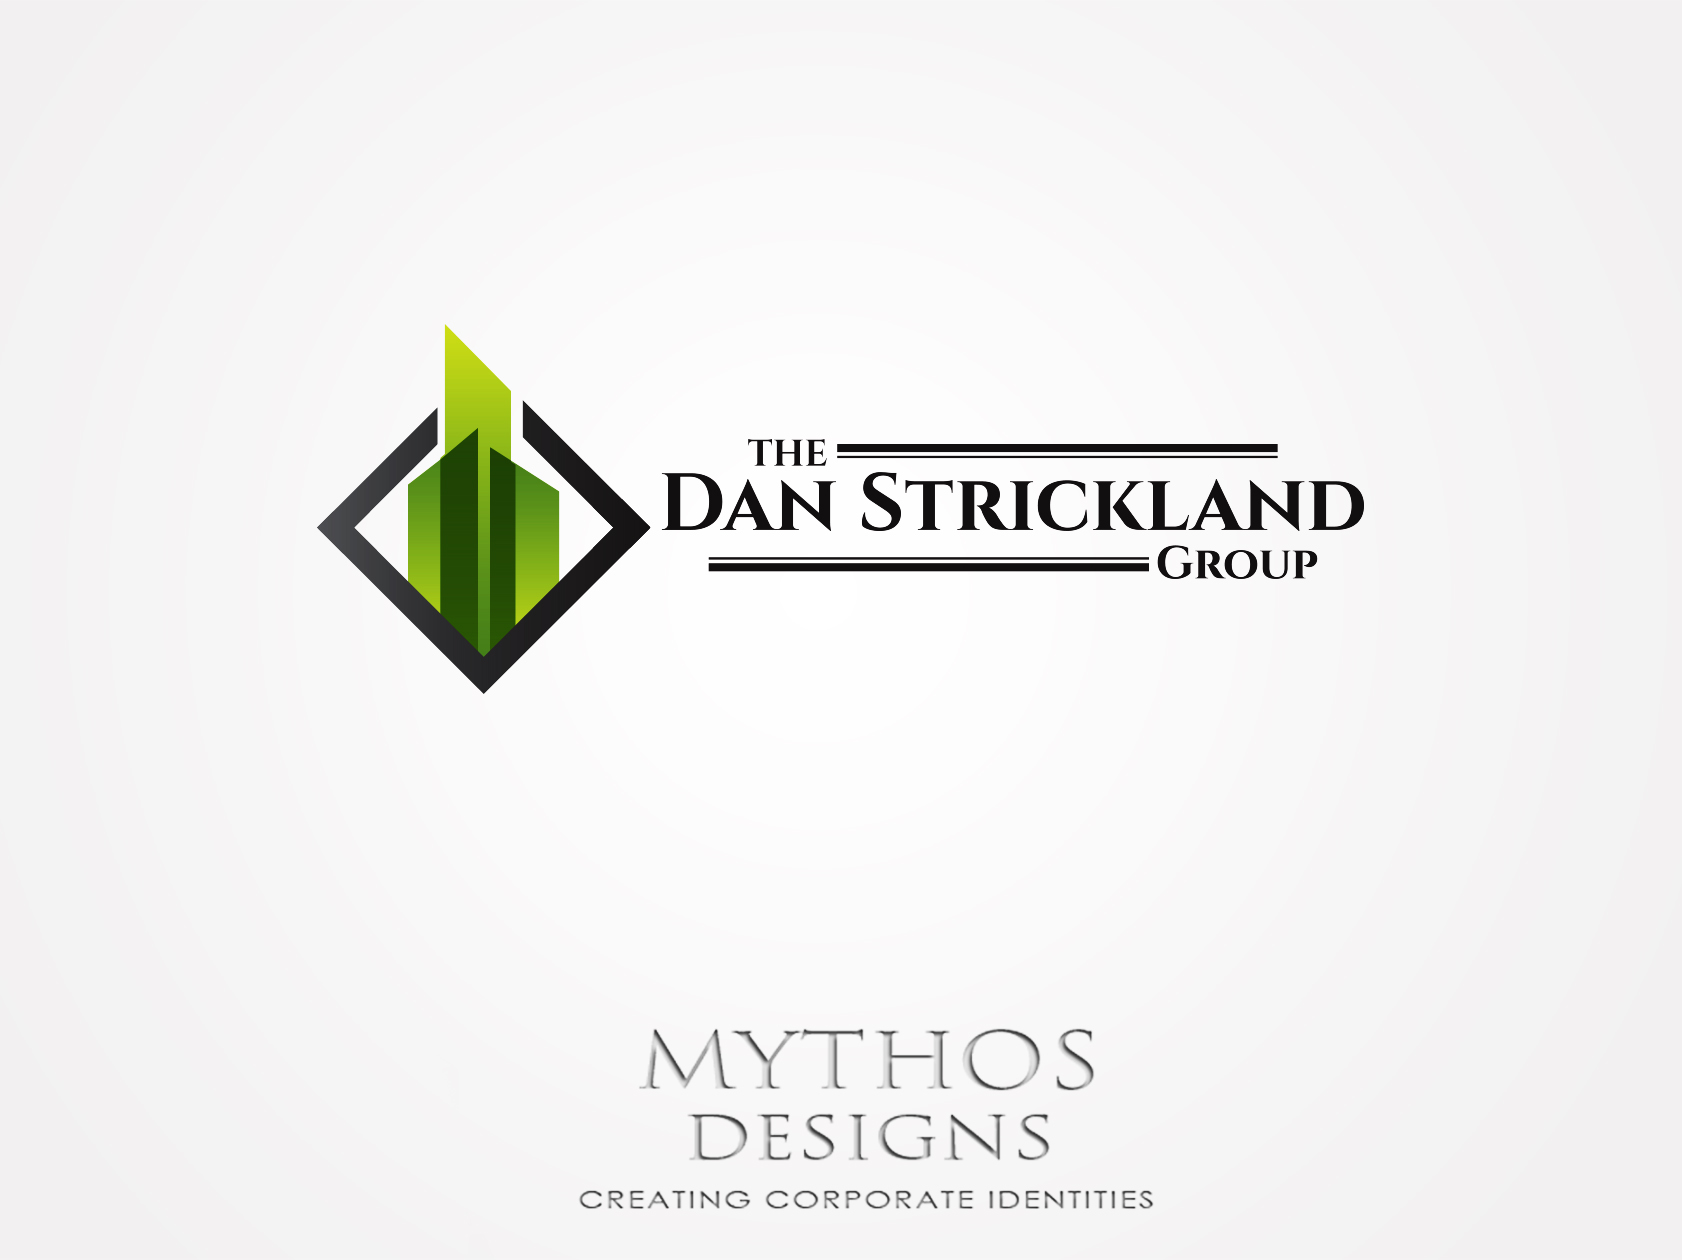 Logo Design by Mythos Designs - Entry No. 14 in the Logo Design Contest Creative Logo Design for The Dan Strickland Group.